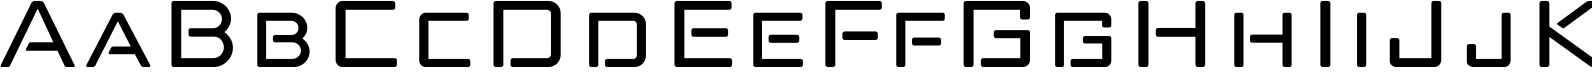 Neo Latina Regular Font